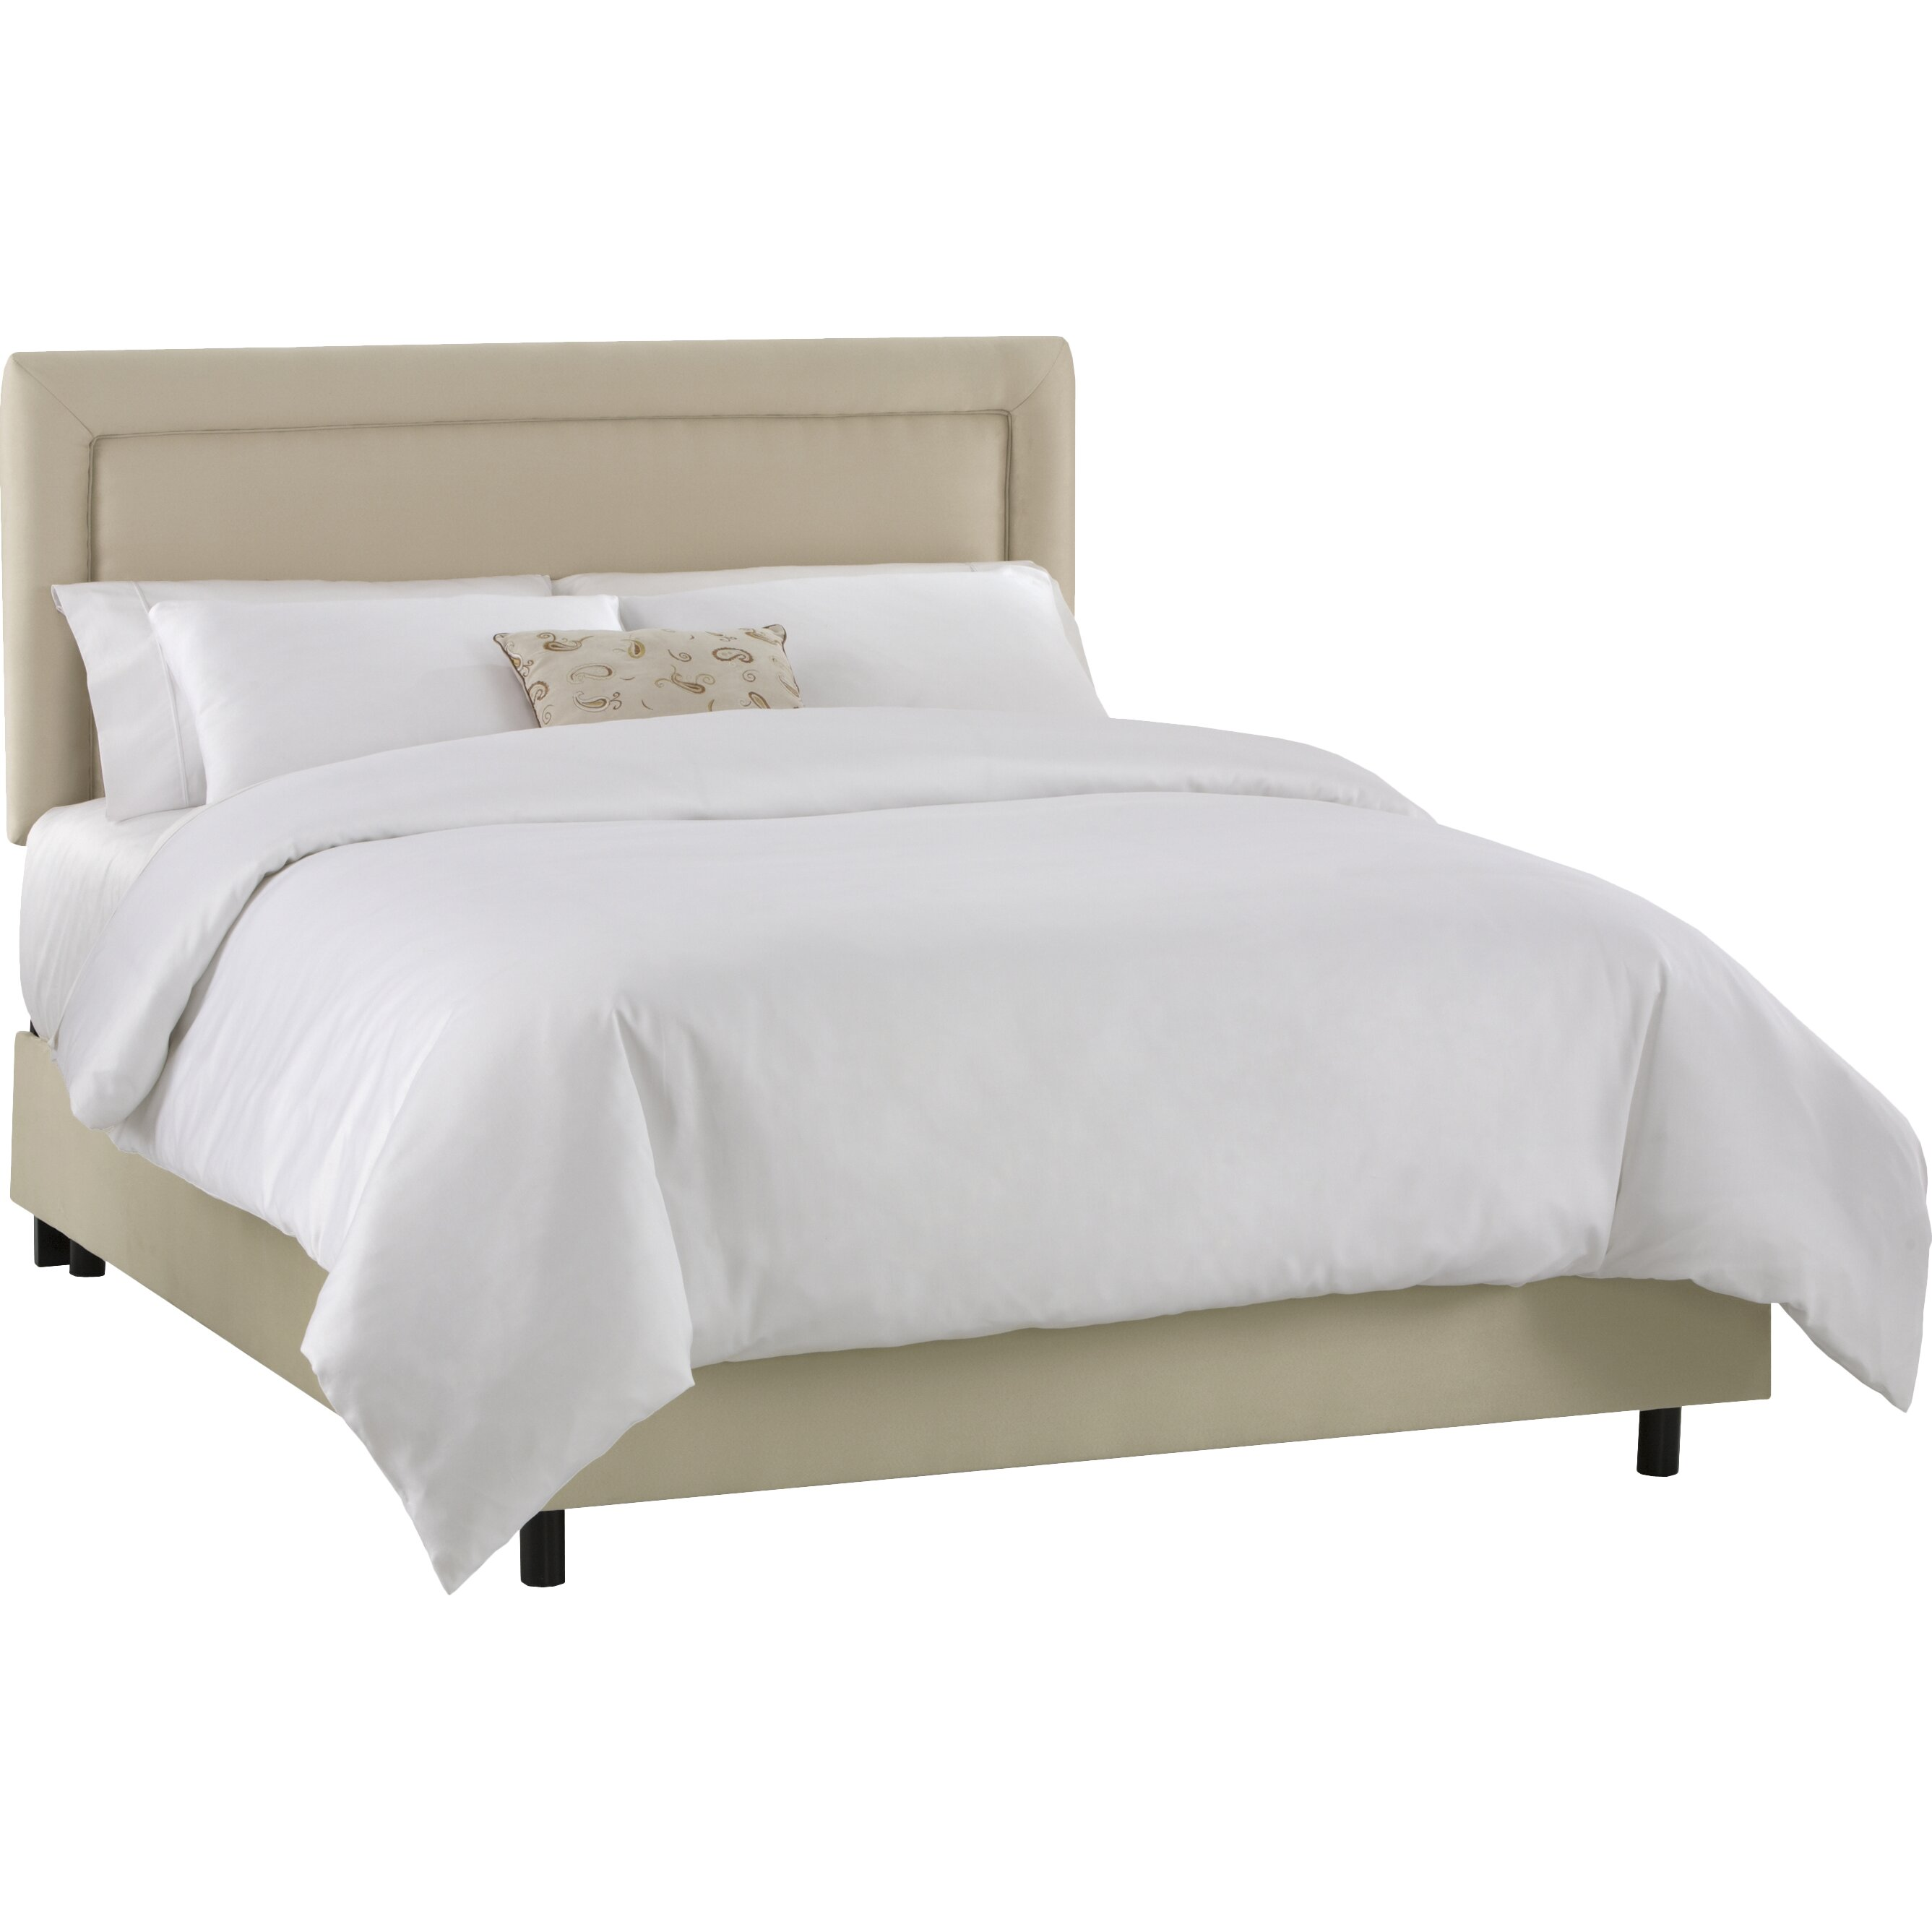 Warefair Com: Skyline Furniture Border Upholstered Headboard & Reviews